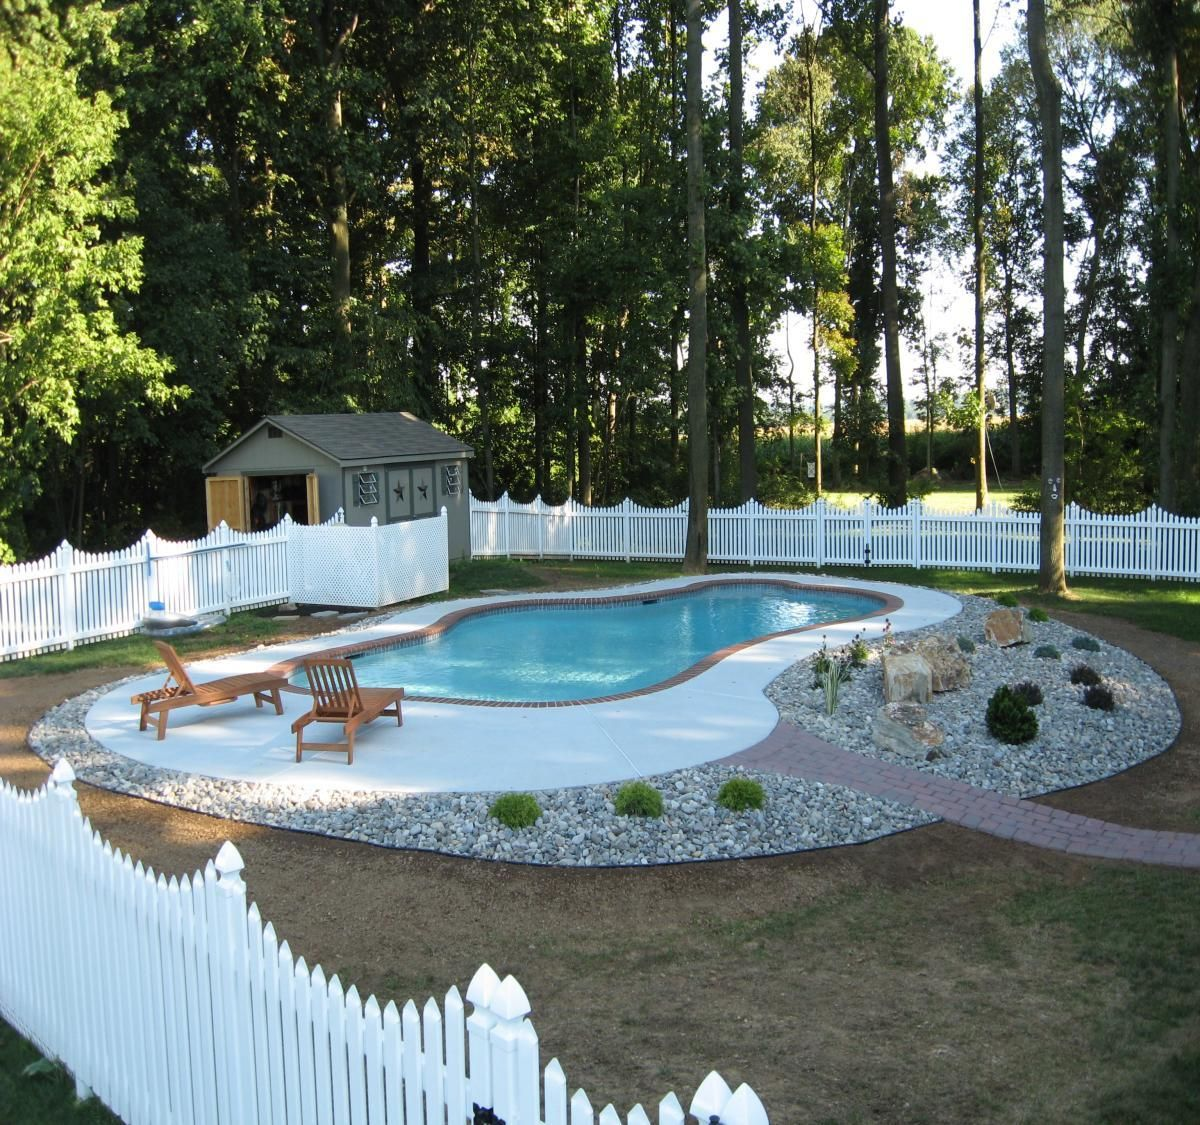 Low maintenance decorative pool design landscaping for Garden near pool